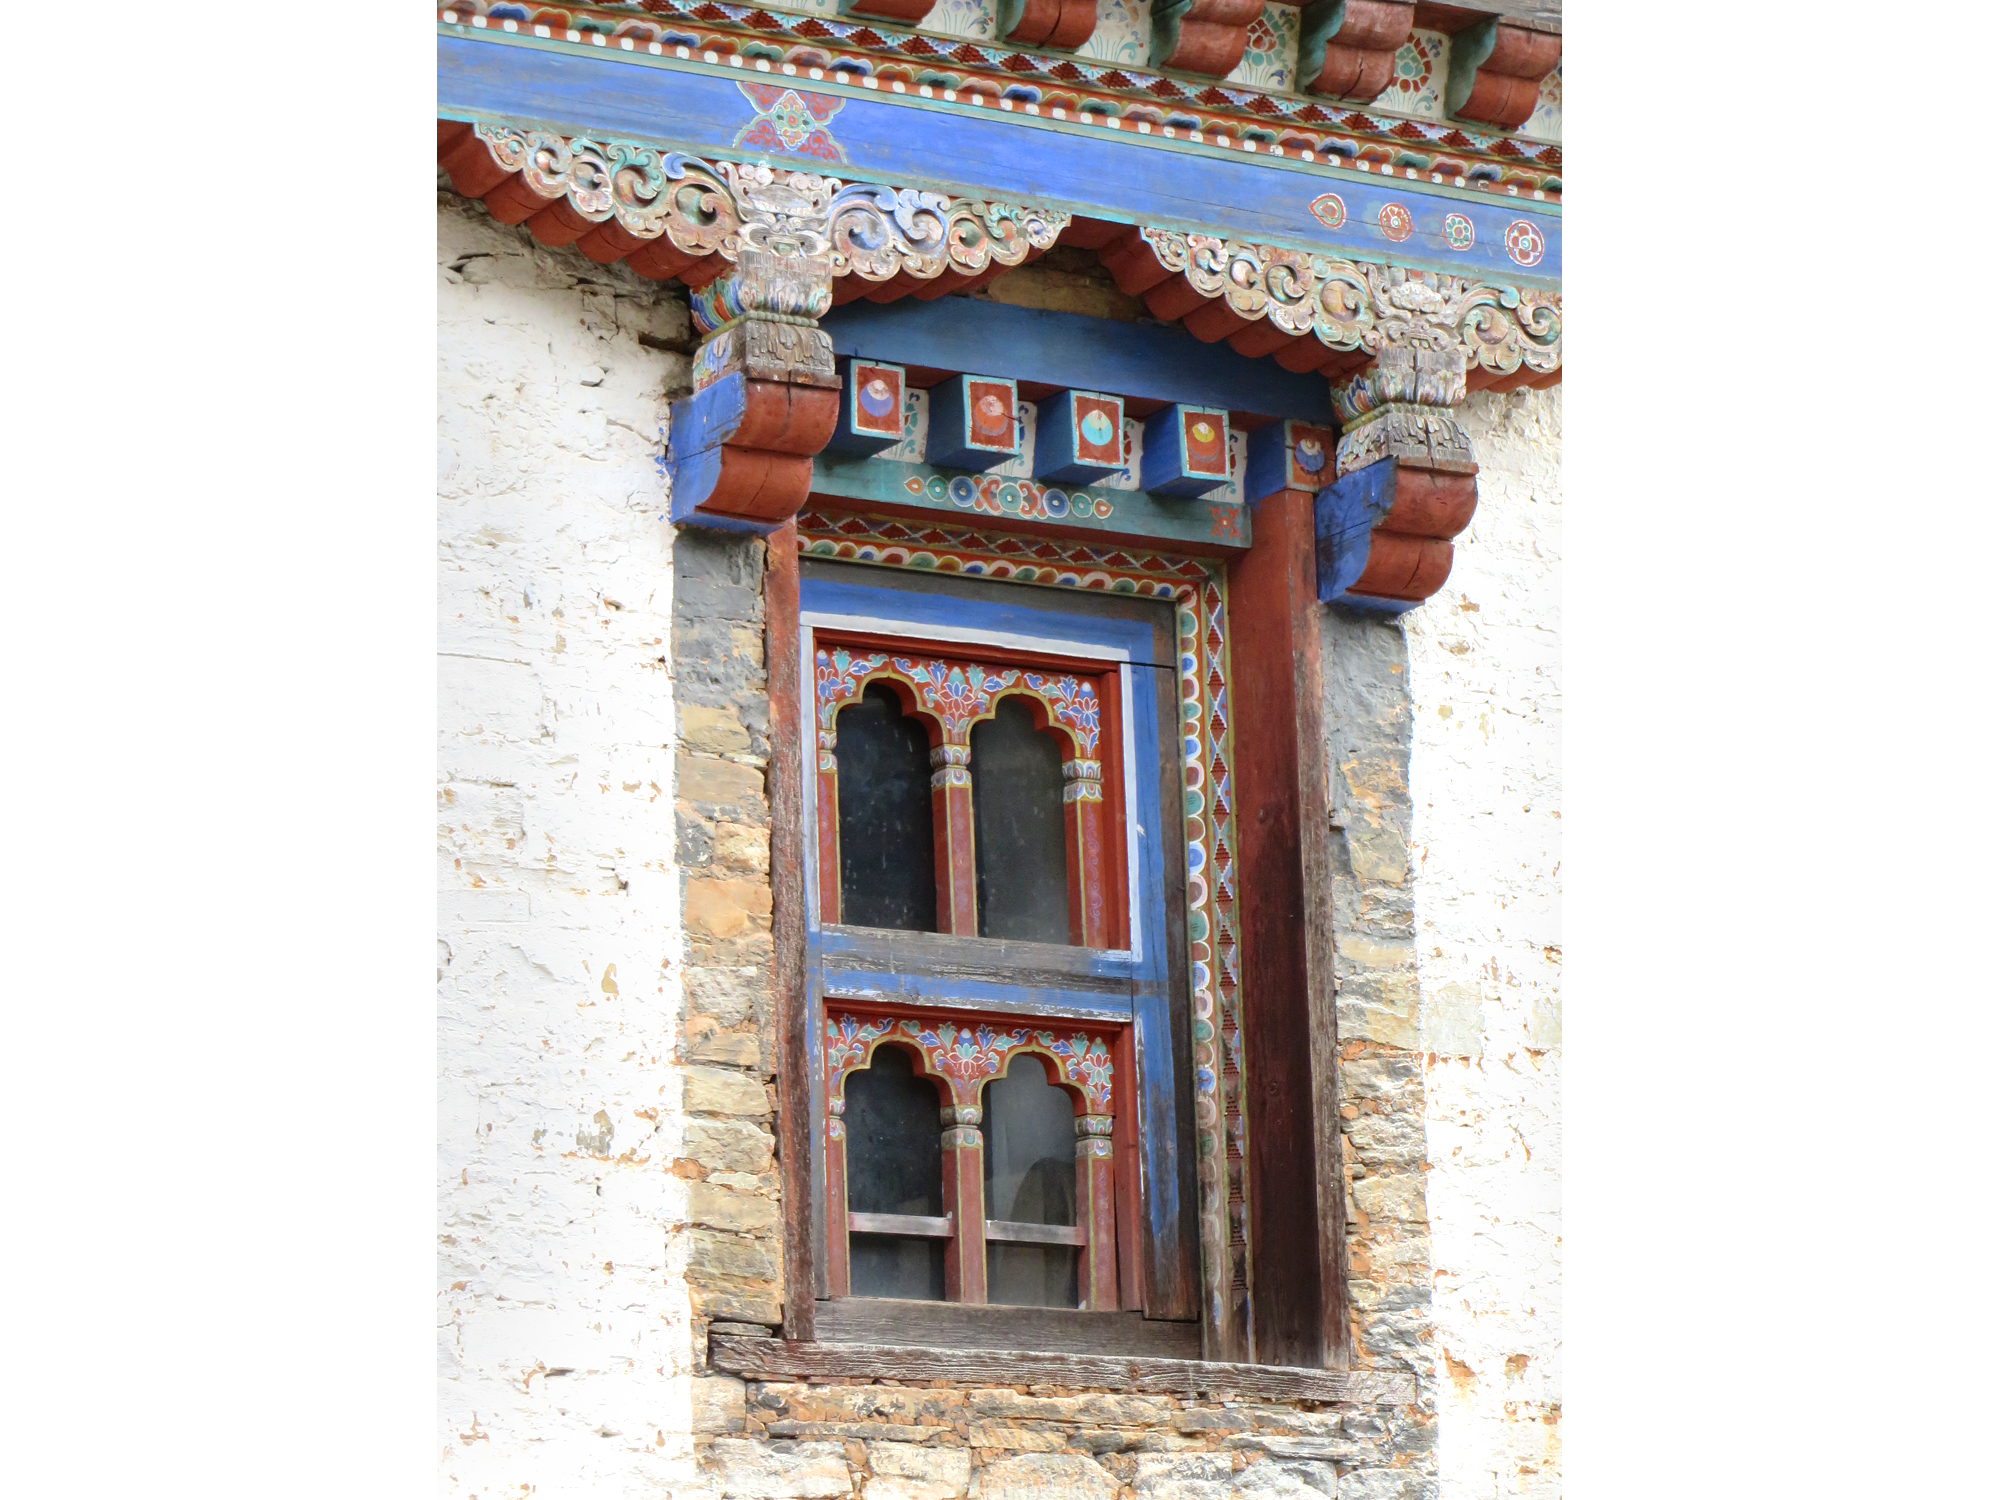 Ogyen-Choling-windows2